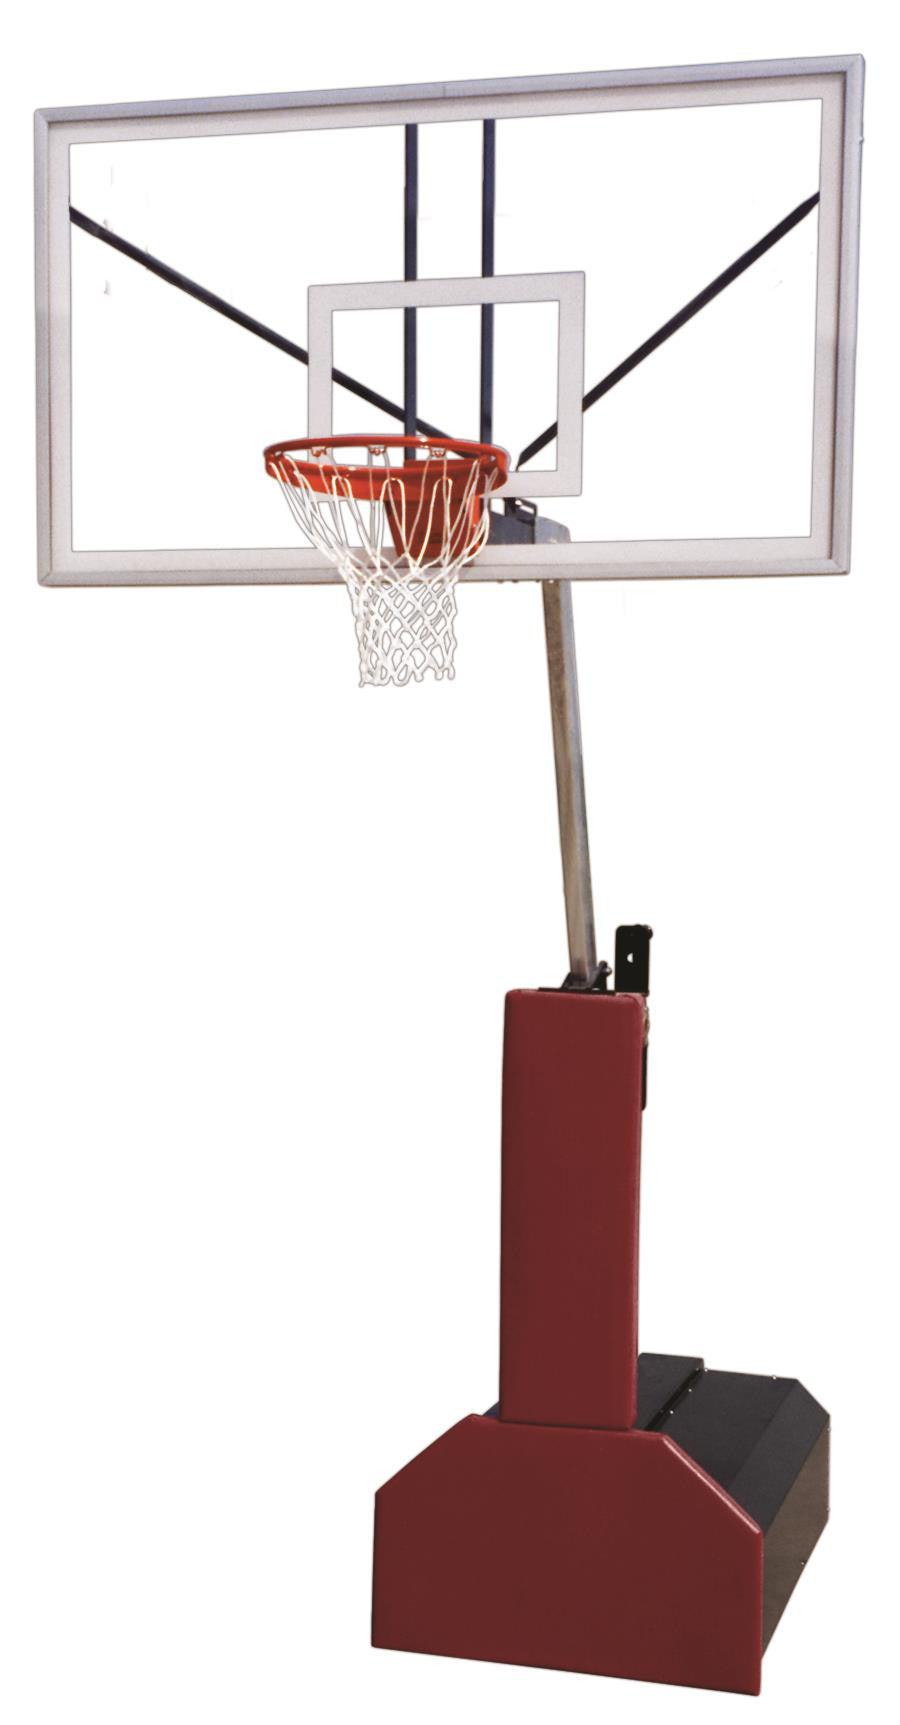 First Team Thunder Arena Portable Adjustable Basketball Hoop 72 inch Tempered Glass